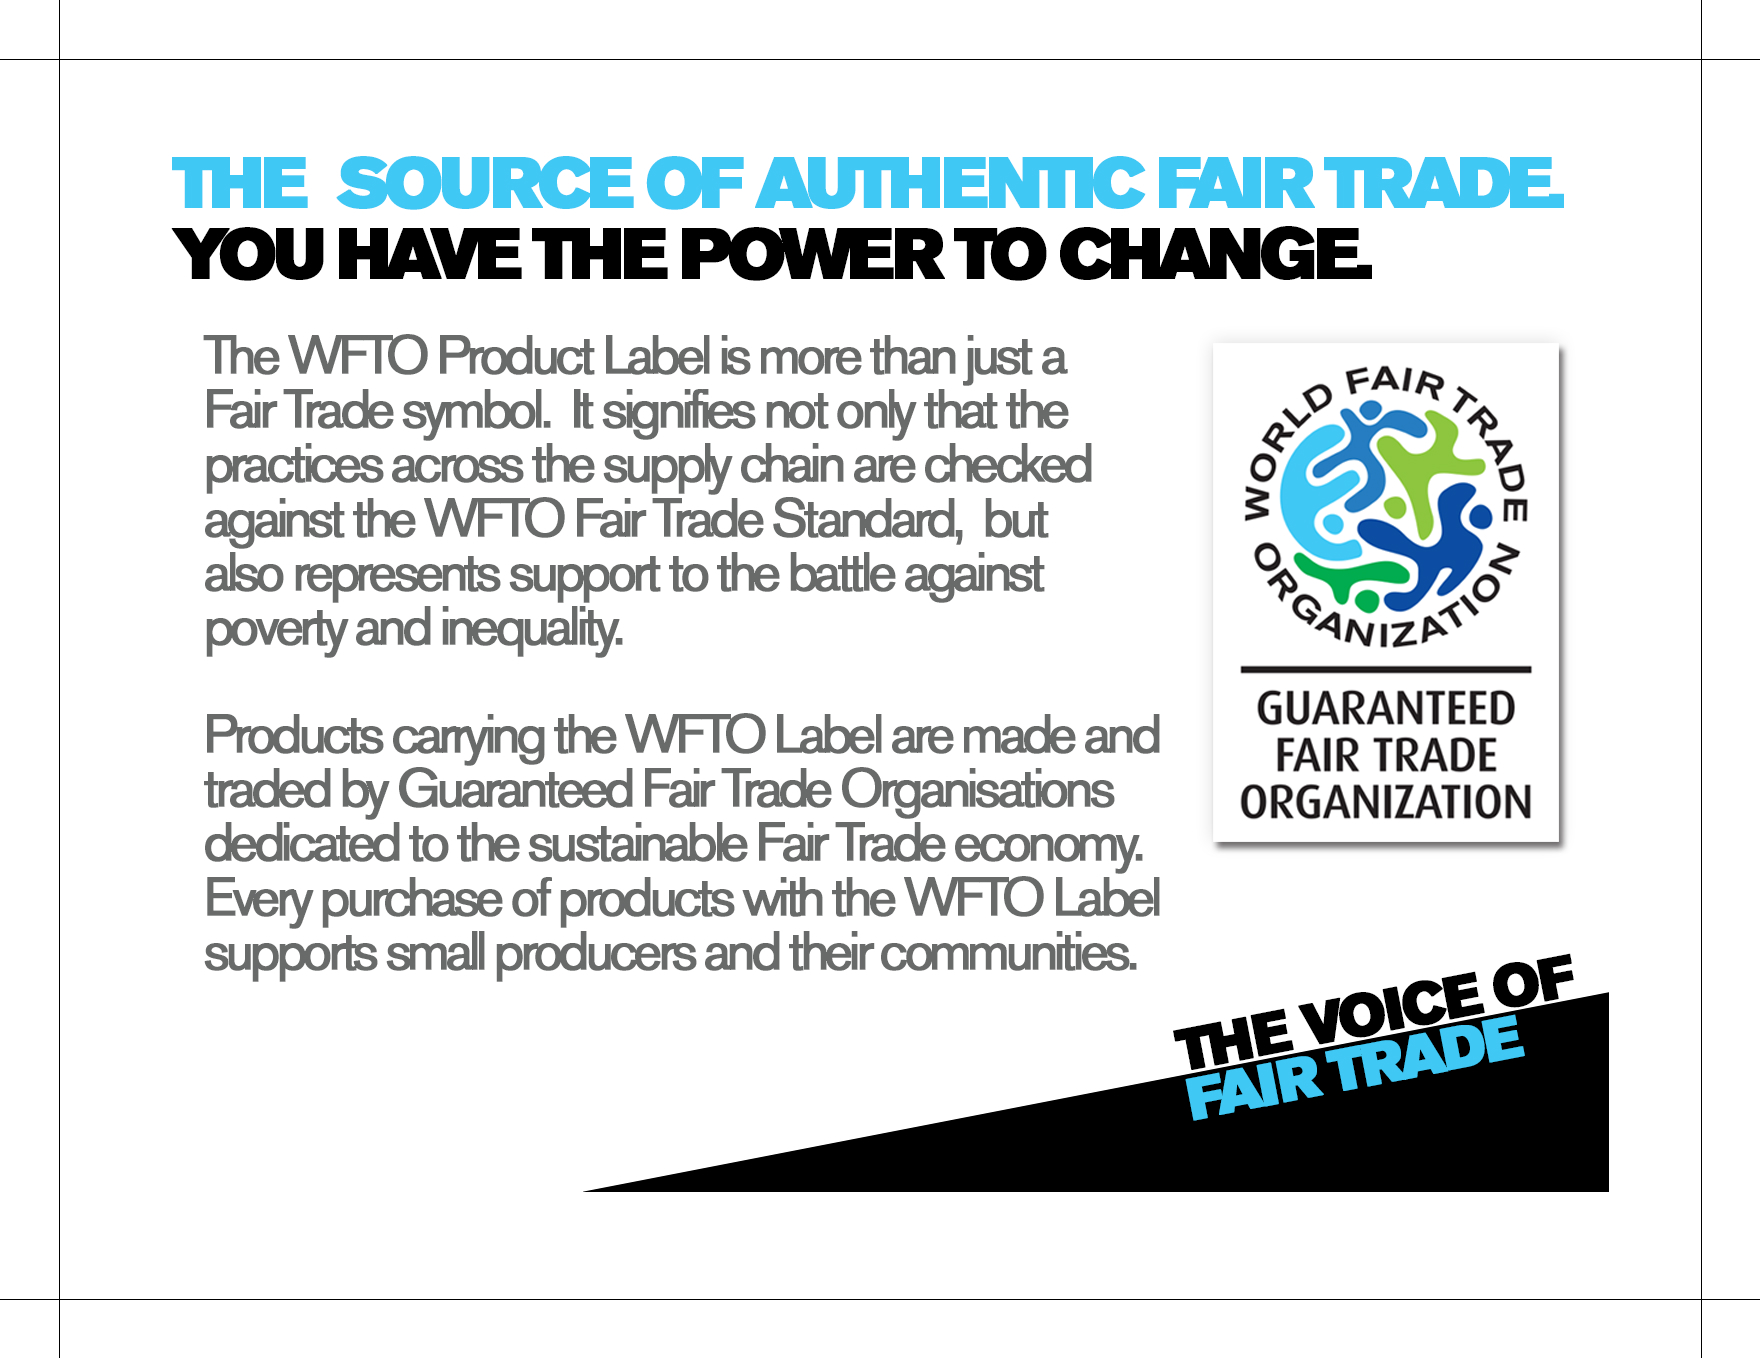 fairtrade organisations